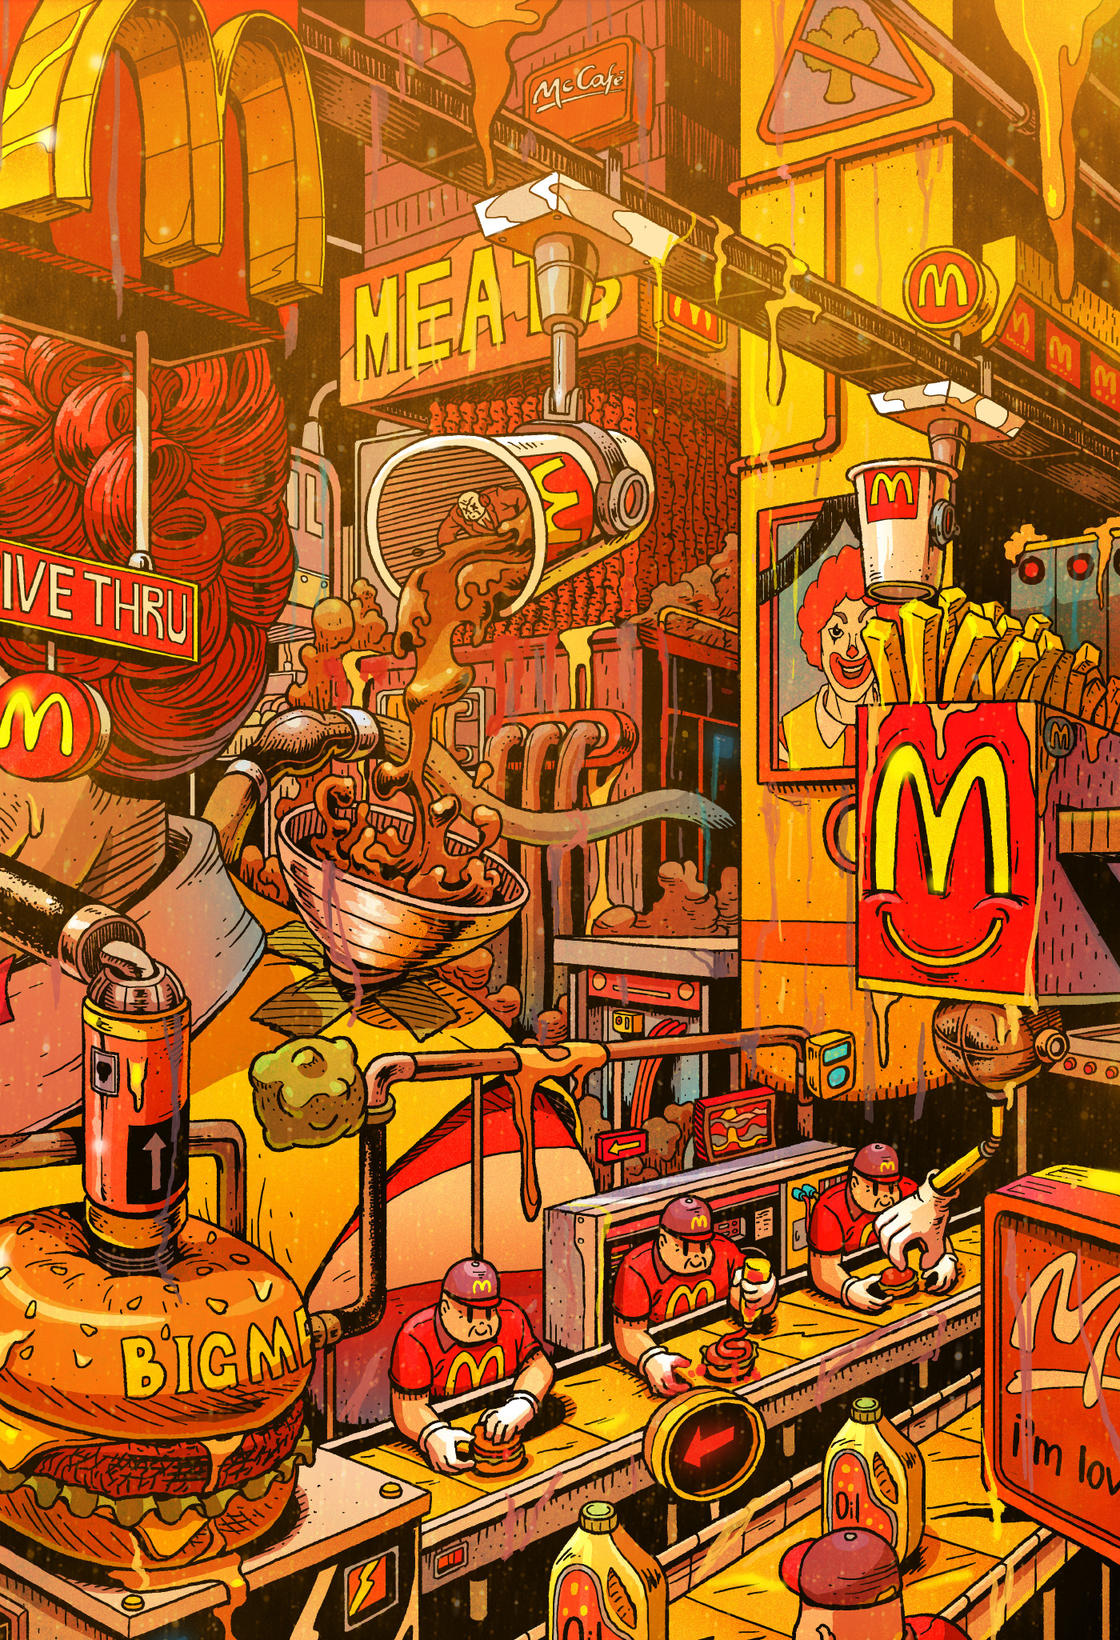 The hell of fast foods summed-up in three striking illustrations